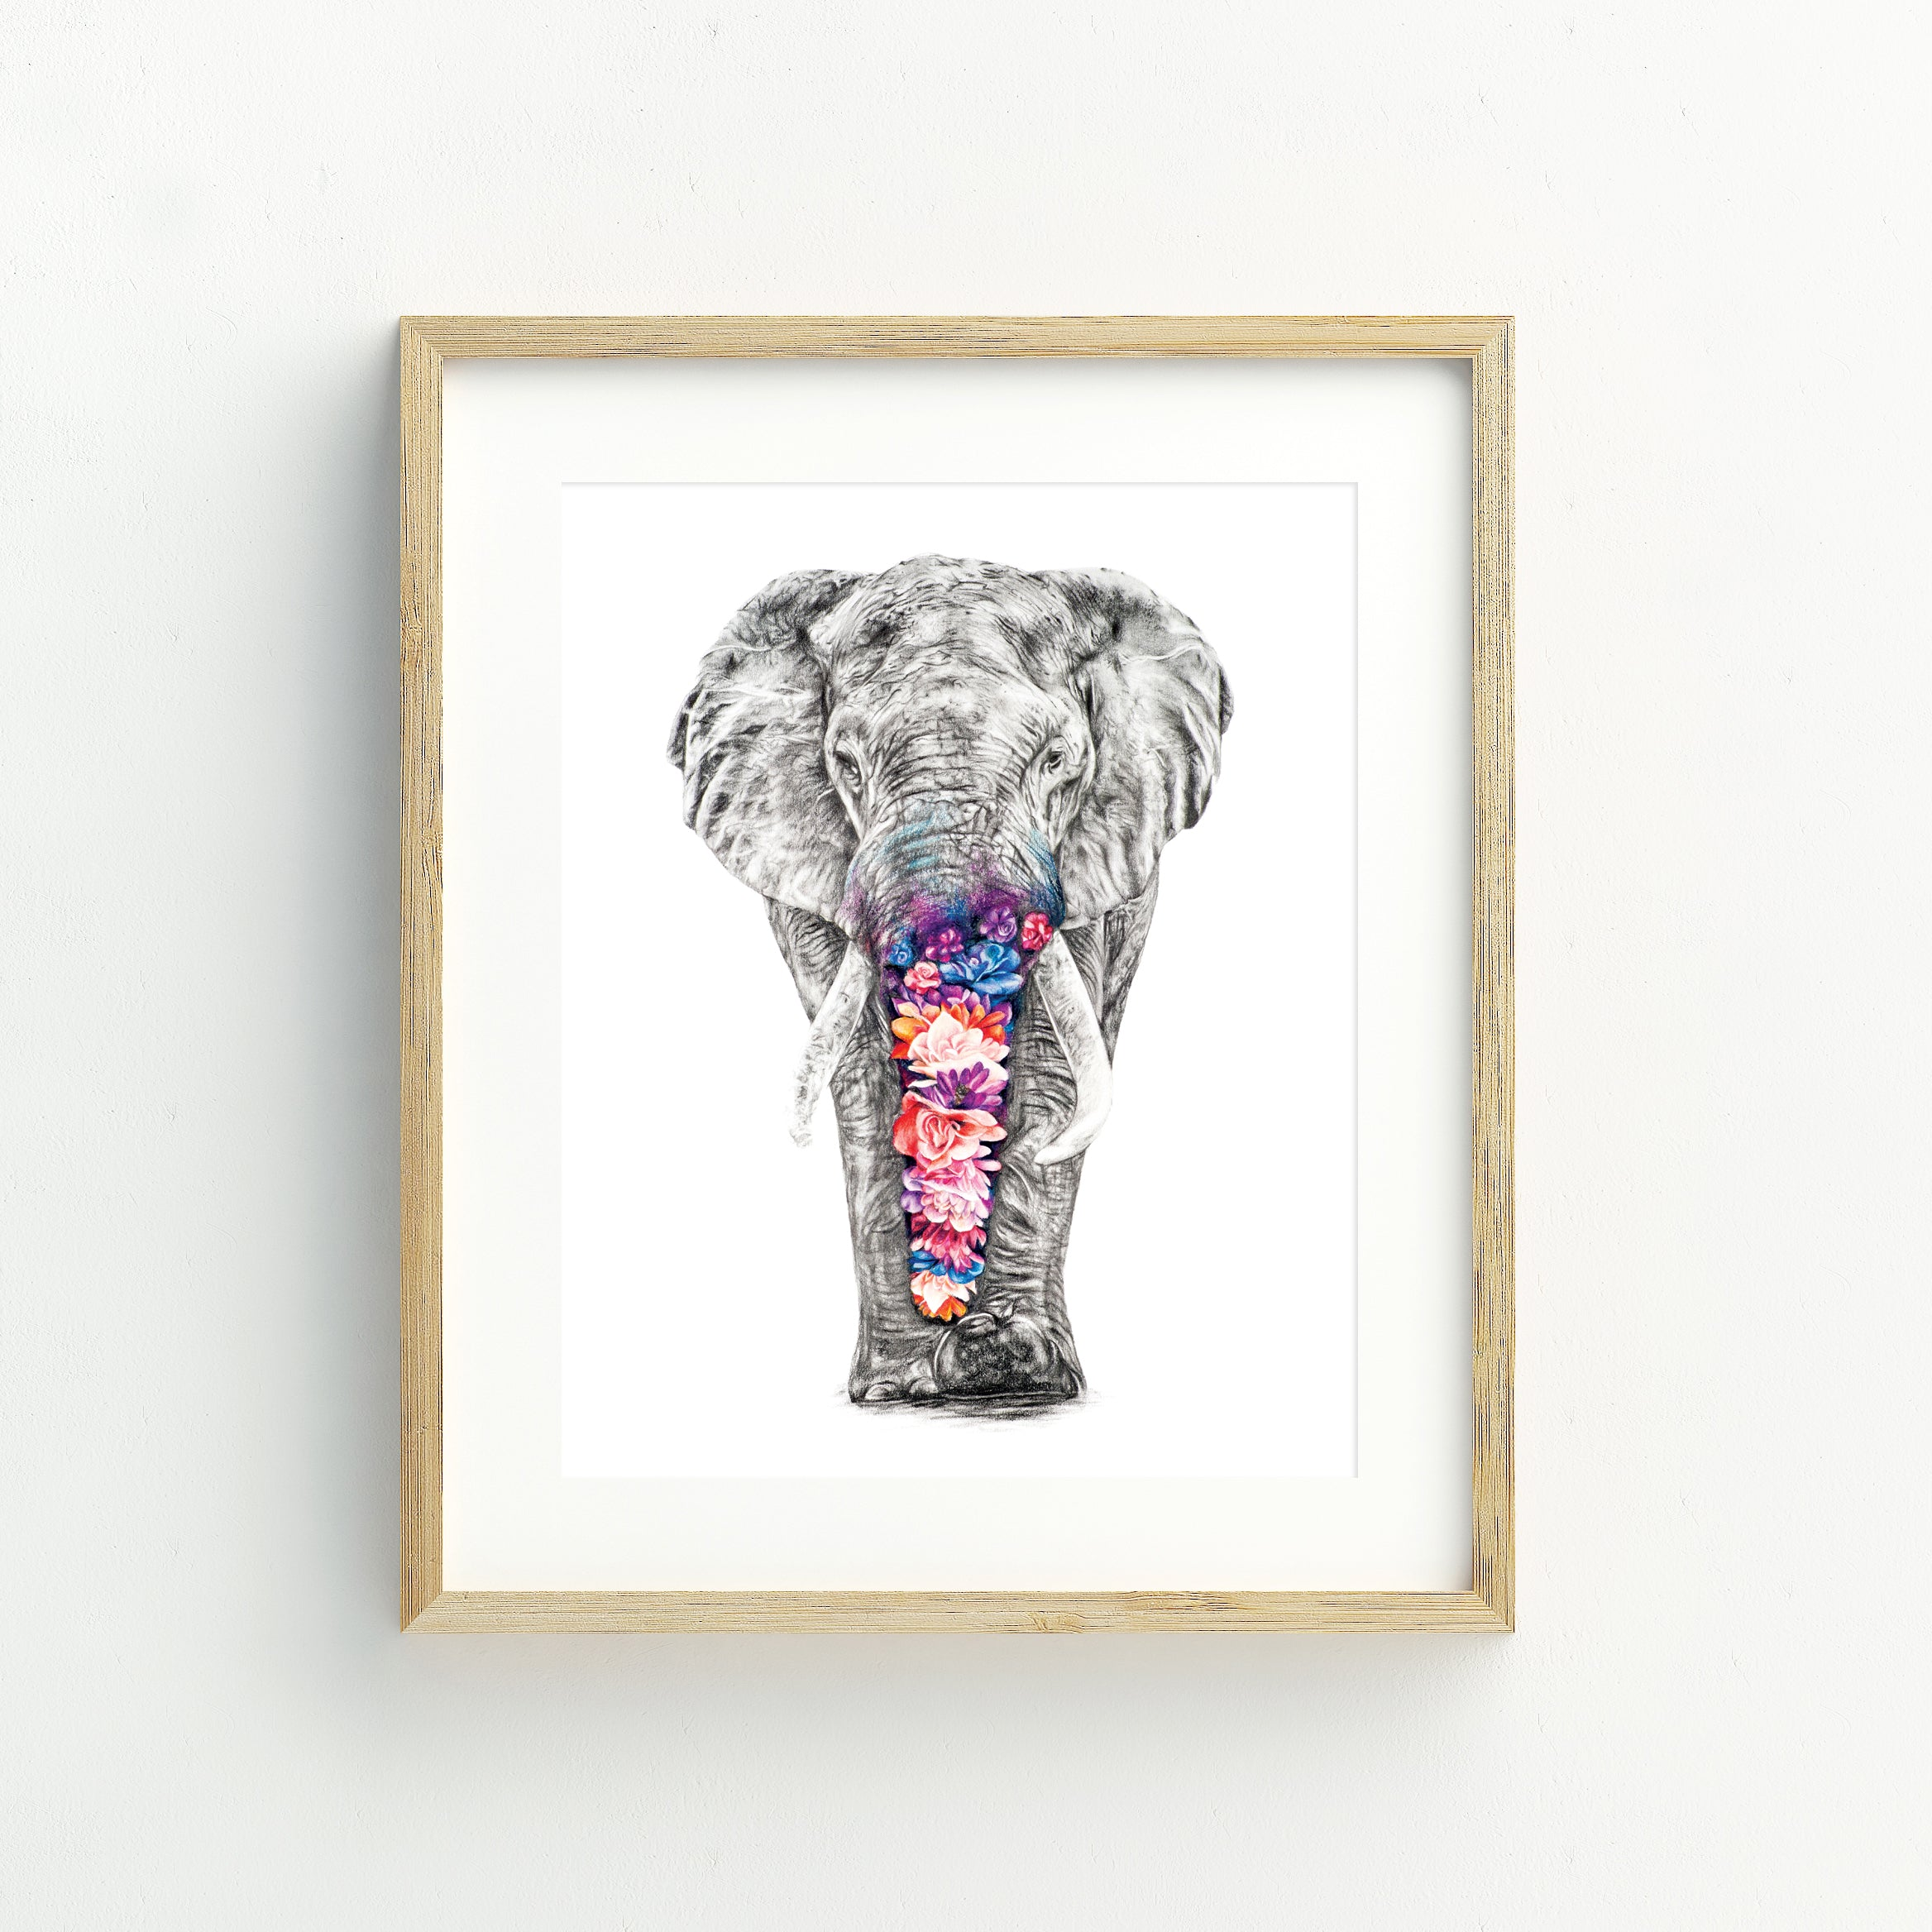 Effy the Elephant - Medium Print